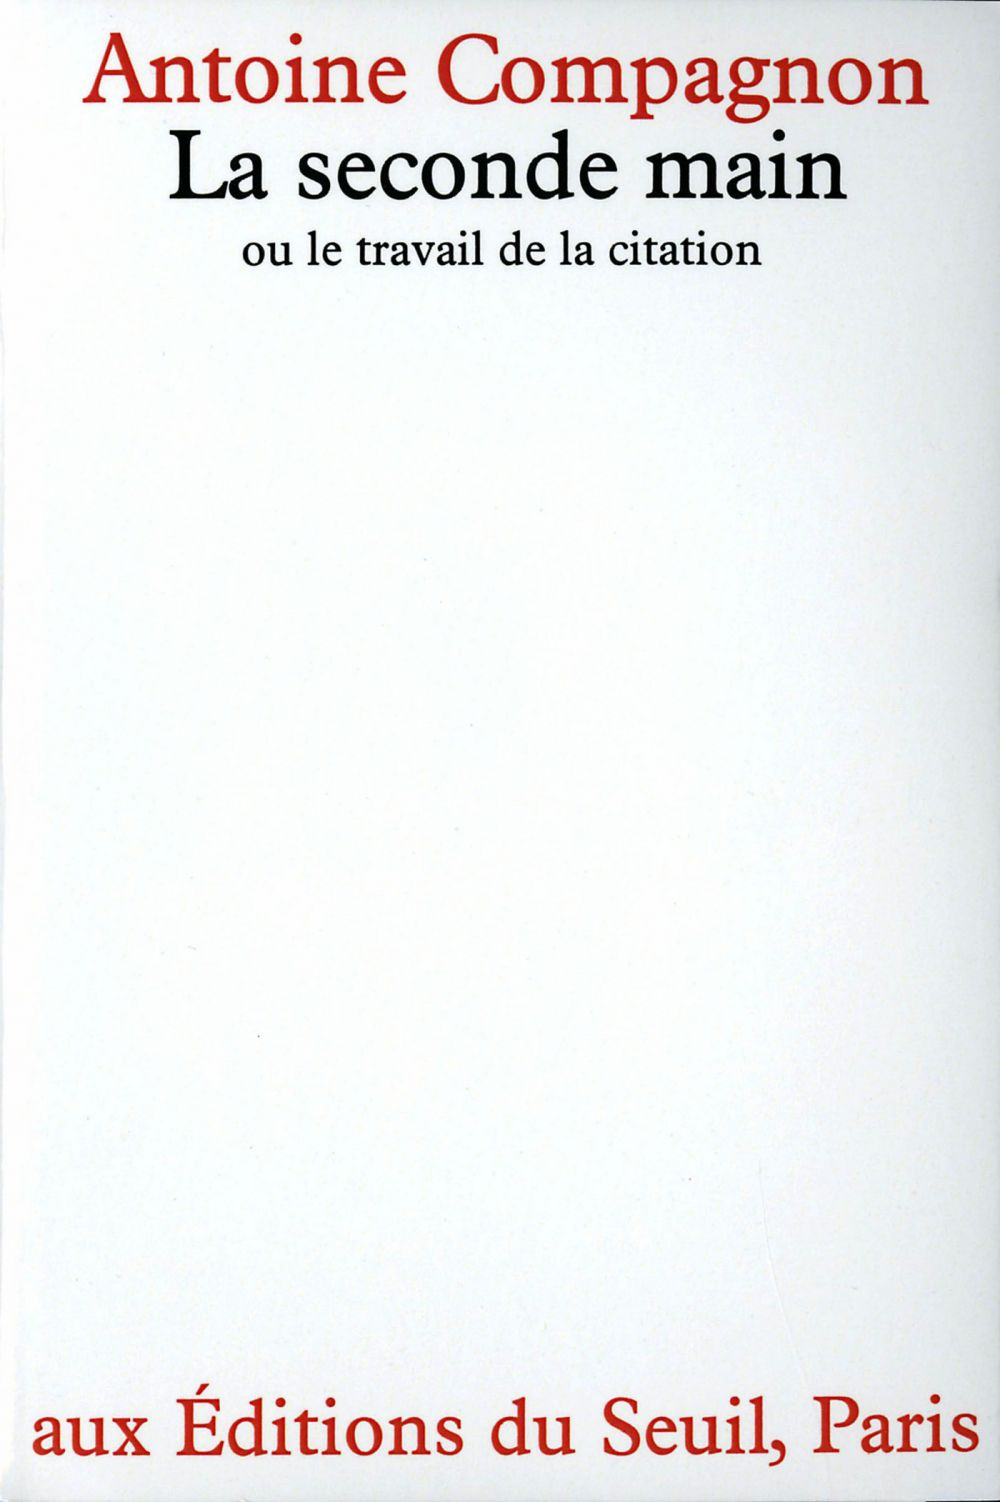 La Seconde main ou le Travail de la citation